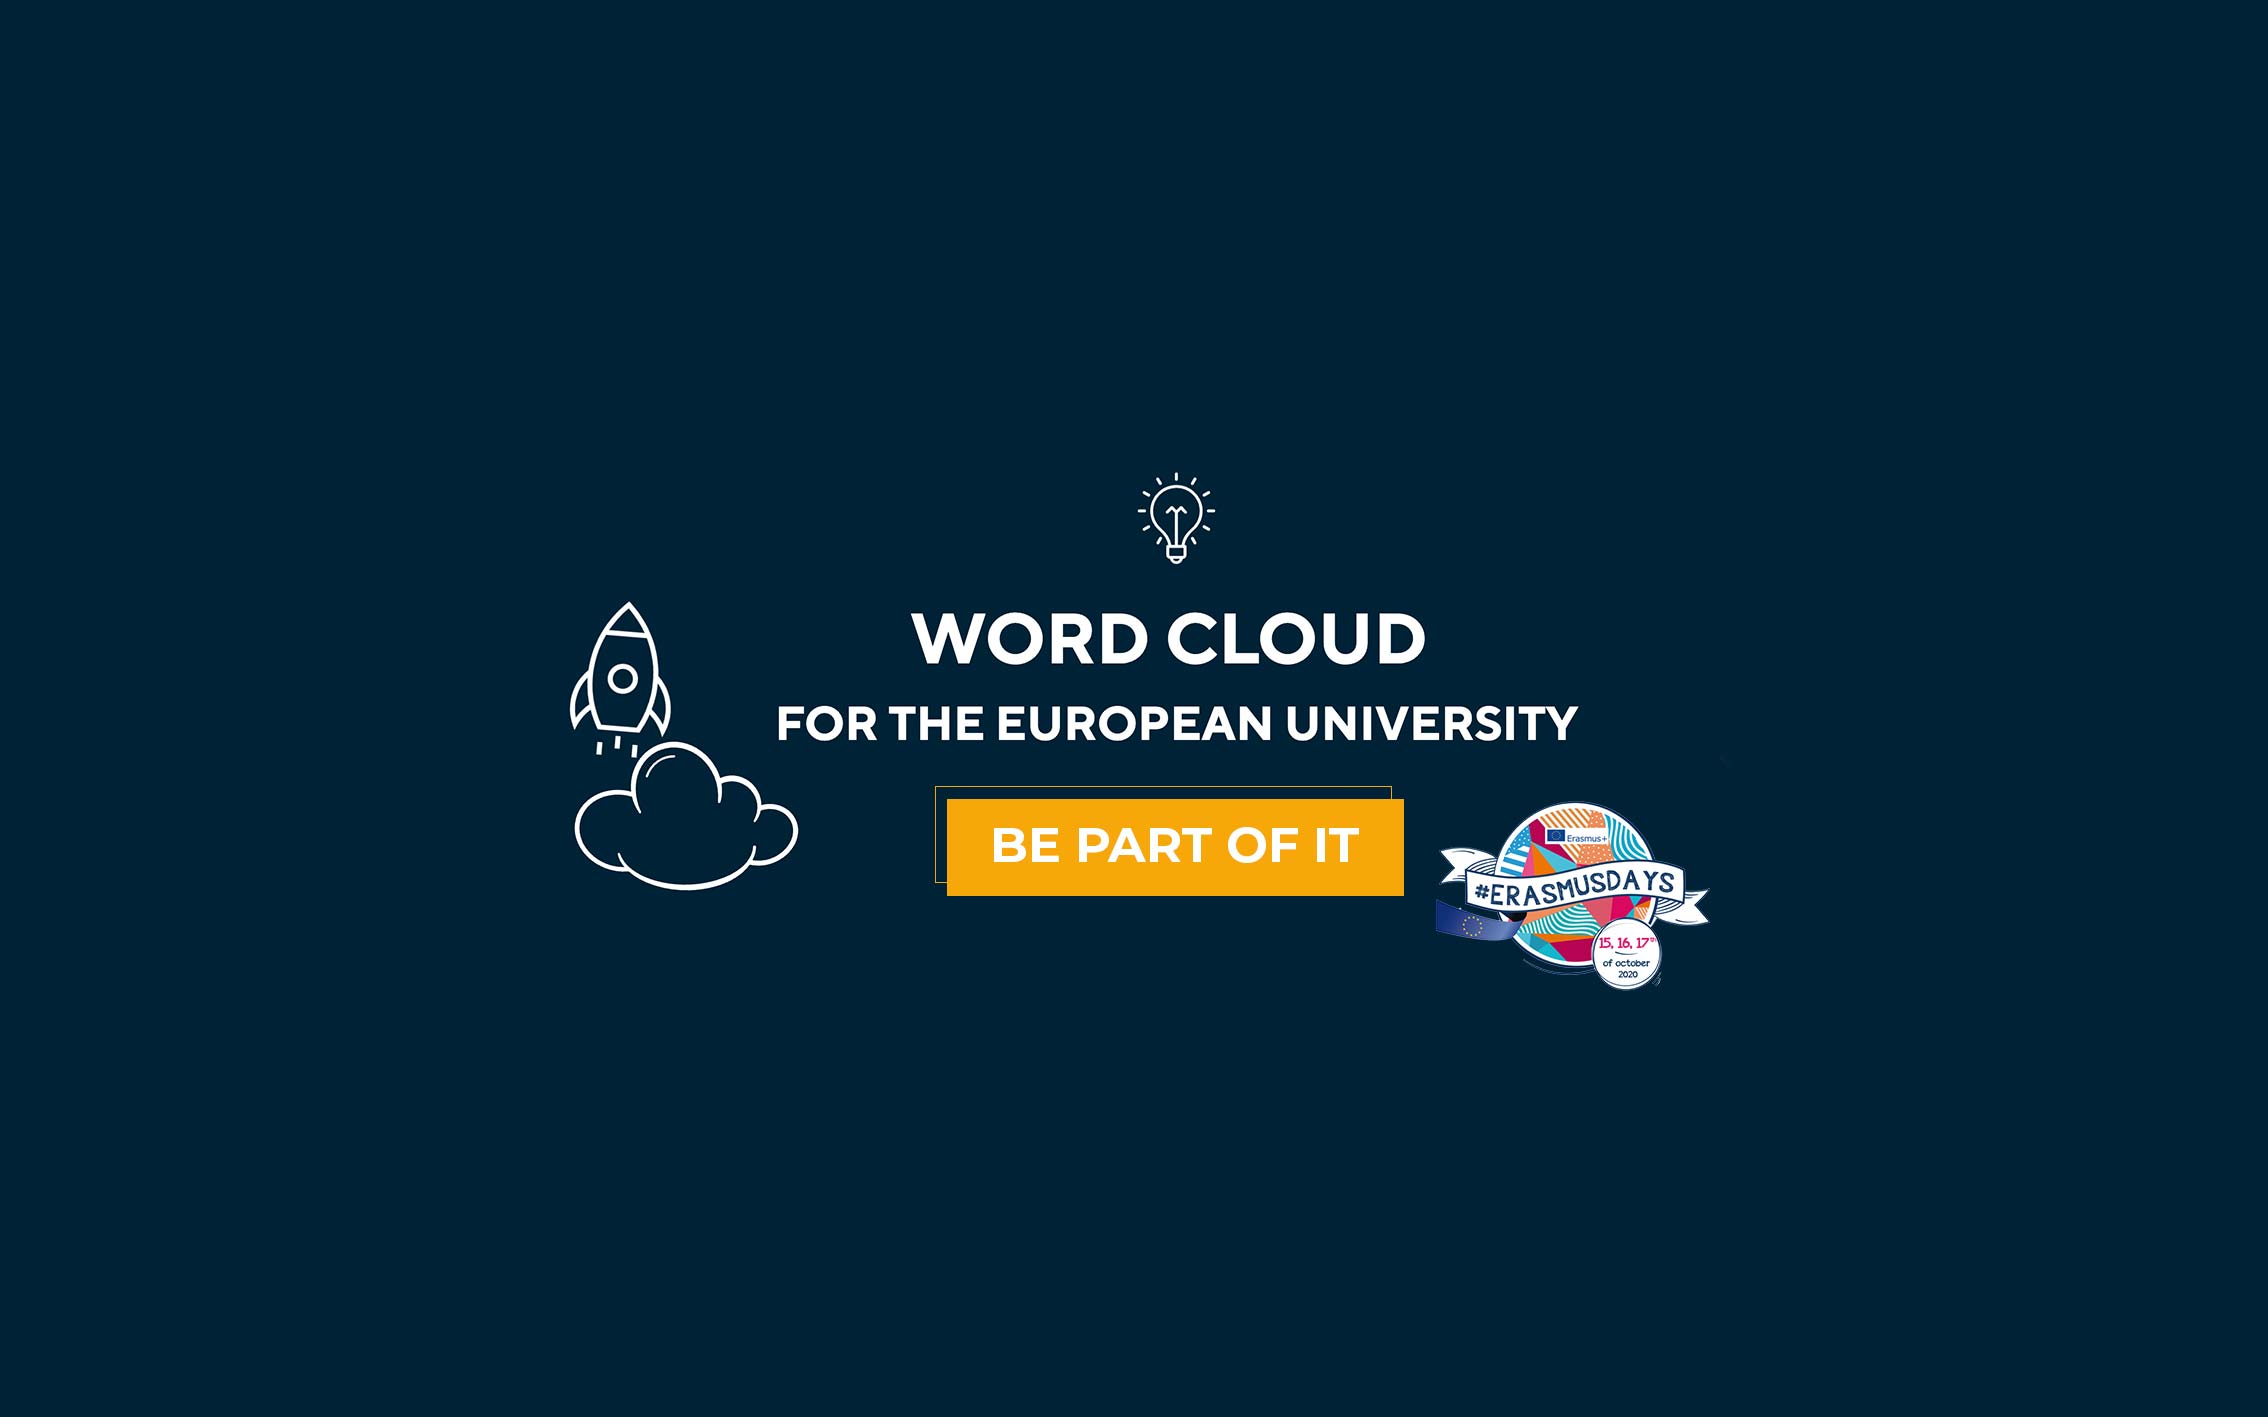 What are the keywords for the European University of 2030?